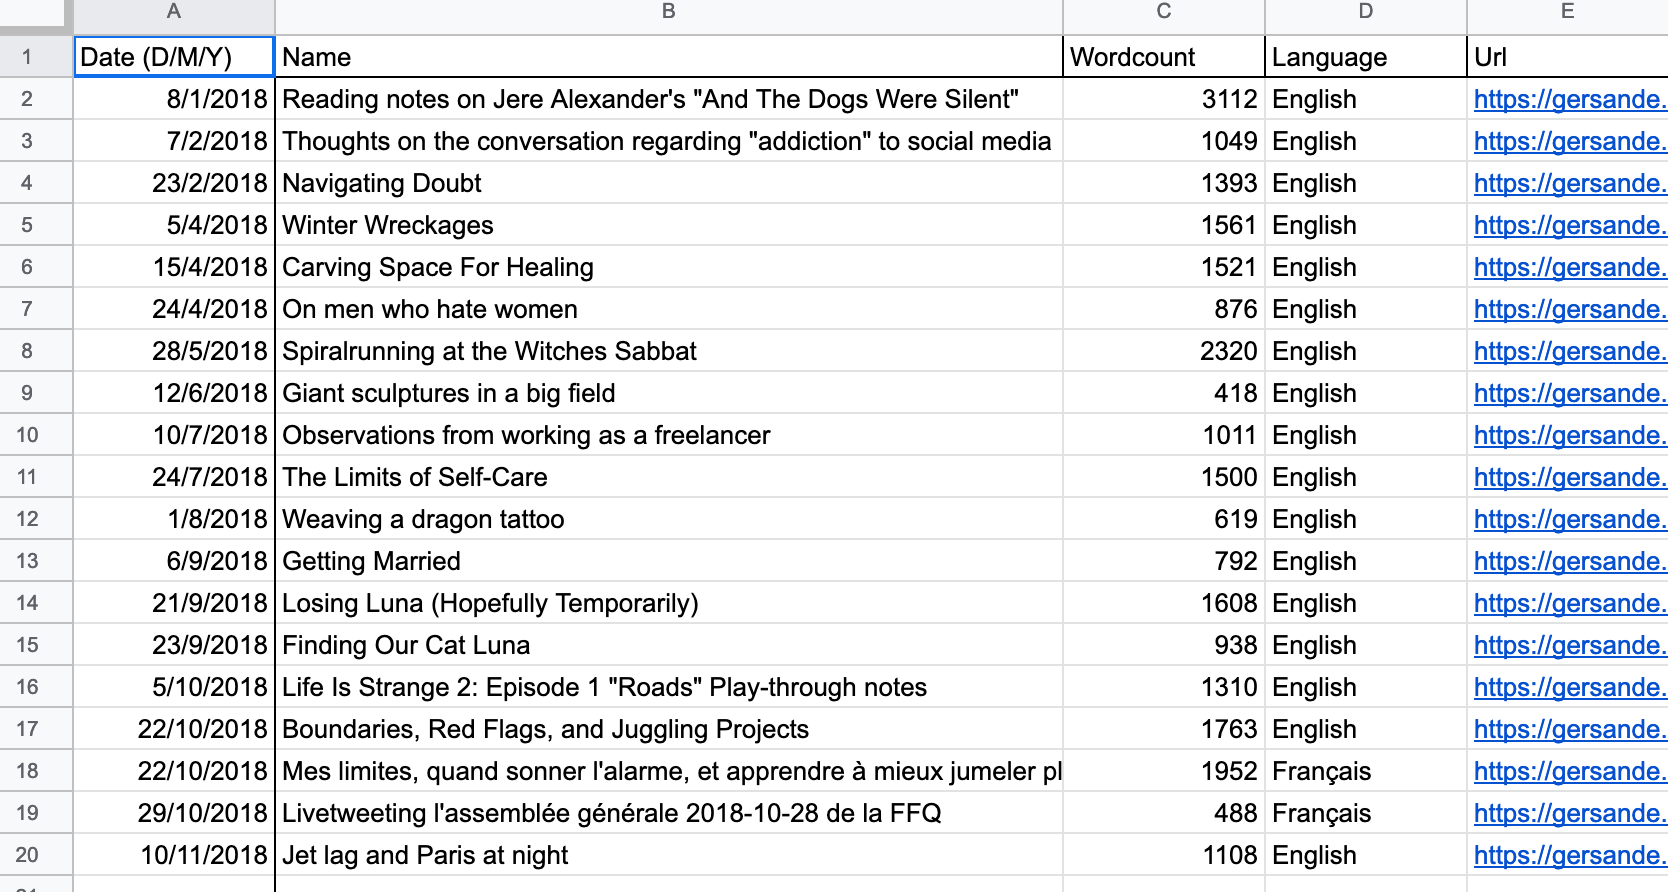 A screenshot of a spreadsheet of my 2018 blog posts.